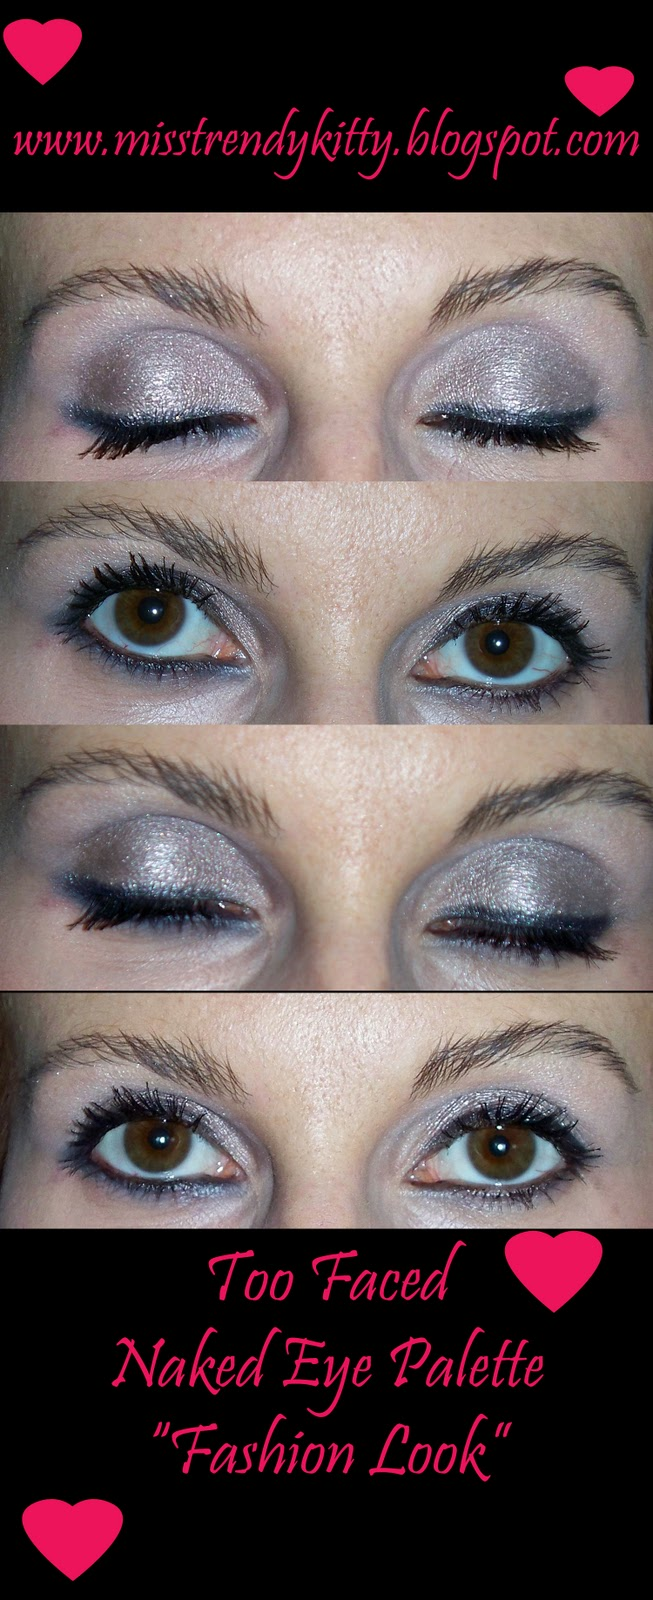 Naked Eyes Neutral Eyeshadow Guide: Trench Collection By Sonia Verardo: Too Faced Naked Eye